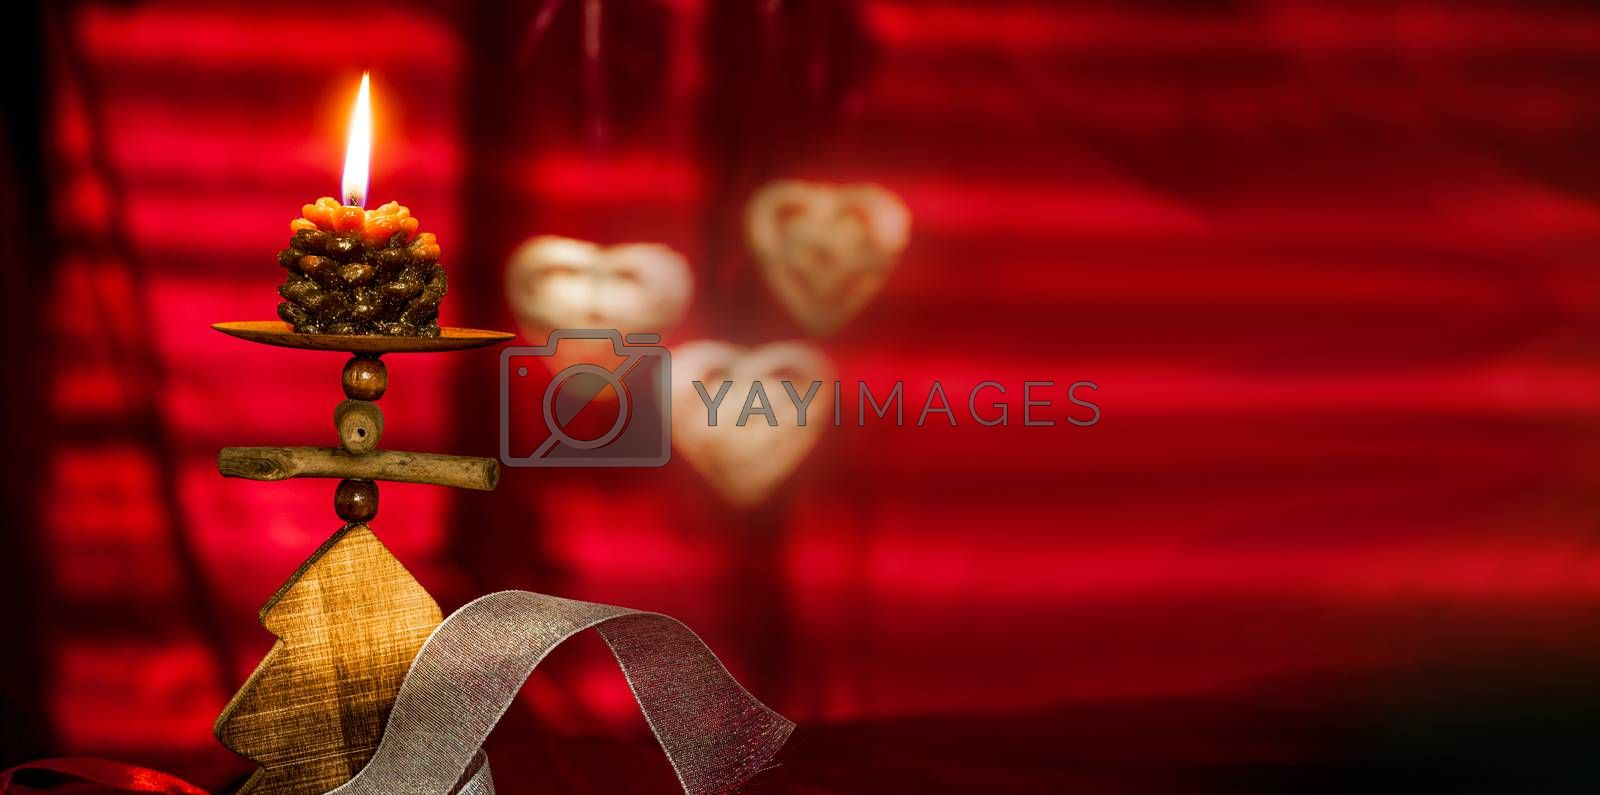 Christmas Cards Background Concepts with Candles